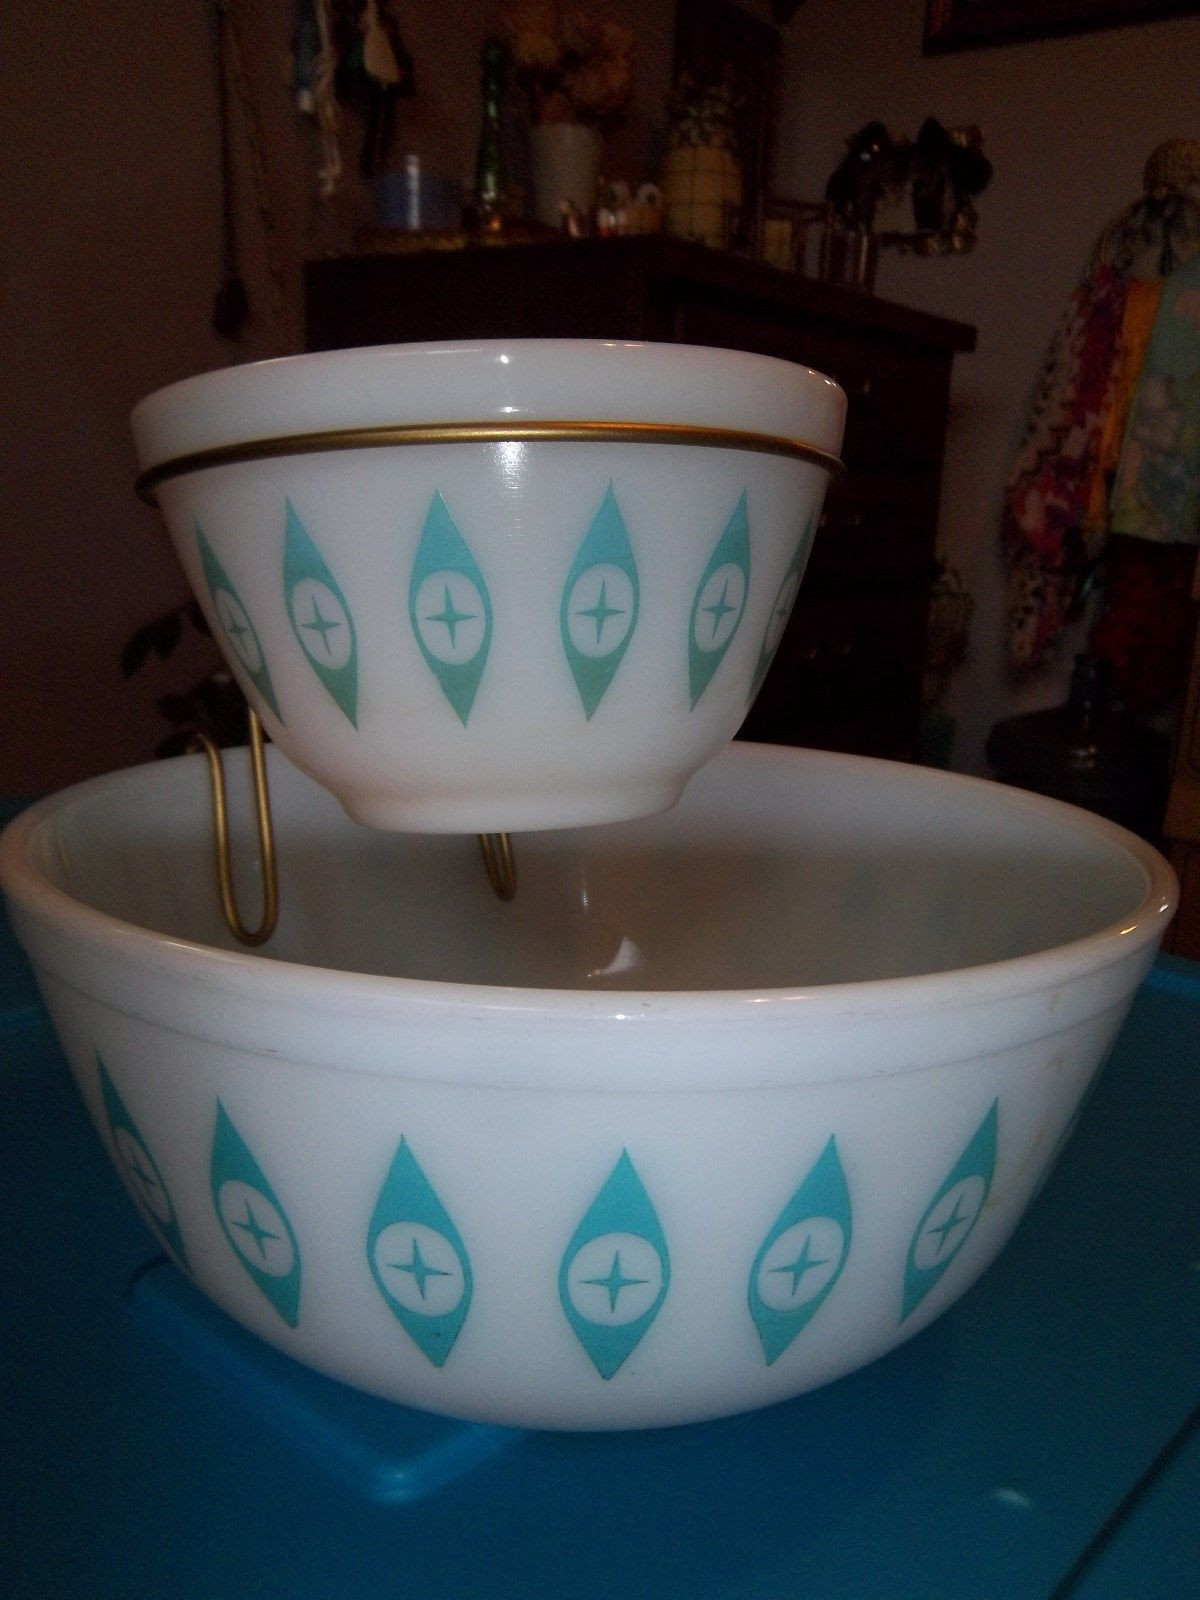 vintage glass vases ebay of the 10 most popular vintage pyrex patterns that sell for a pretty penny with regard to vintage pyrex patterns